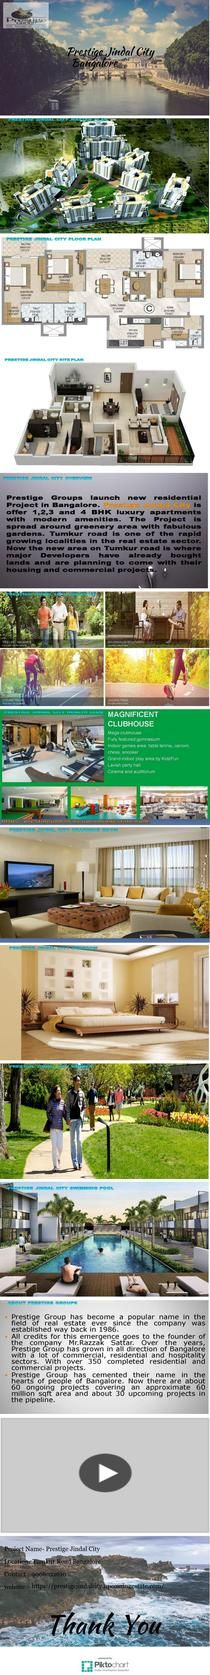 Prestige Jindal City Best Effusive Project in Bangalore | Piktochart Infographic Editor